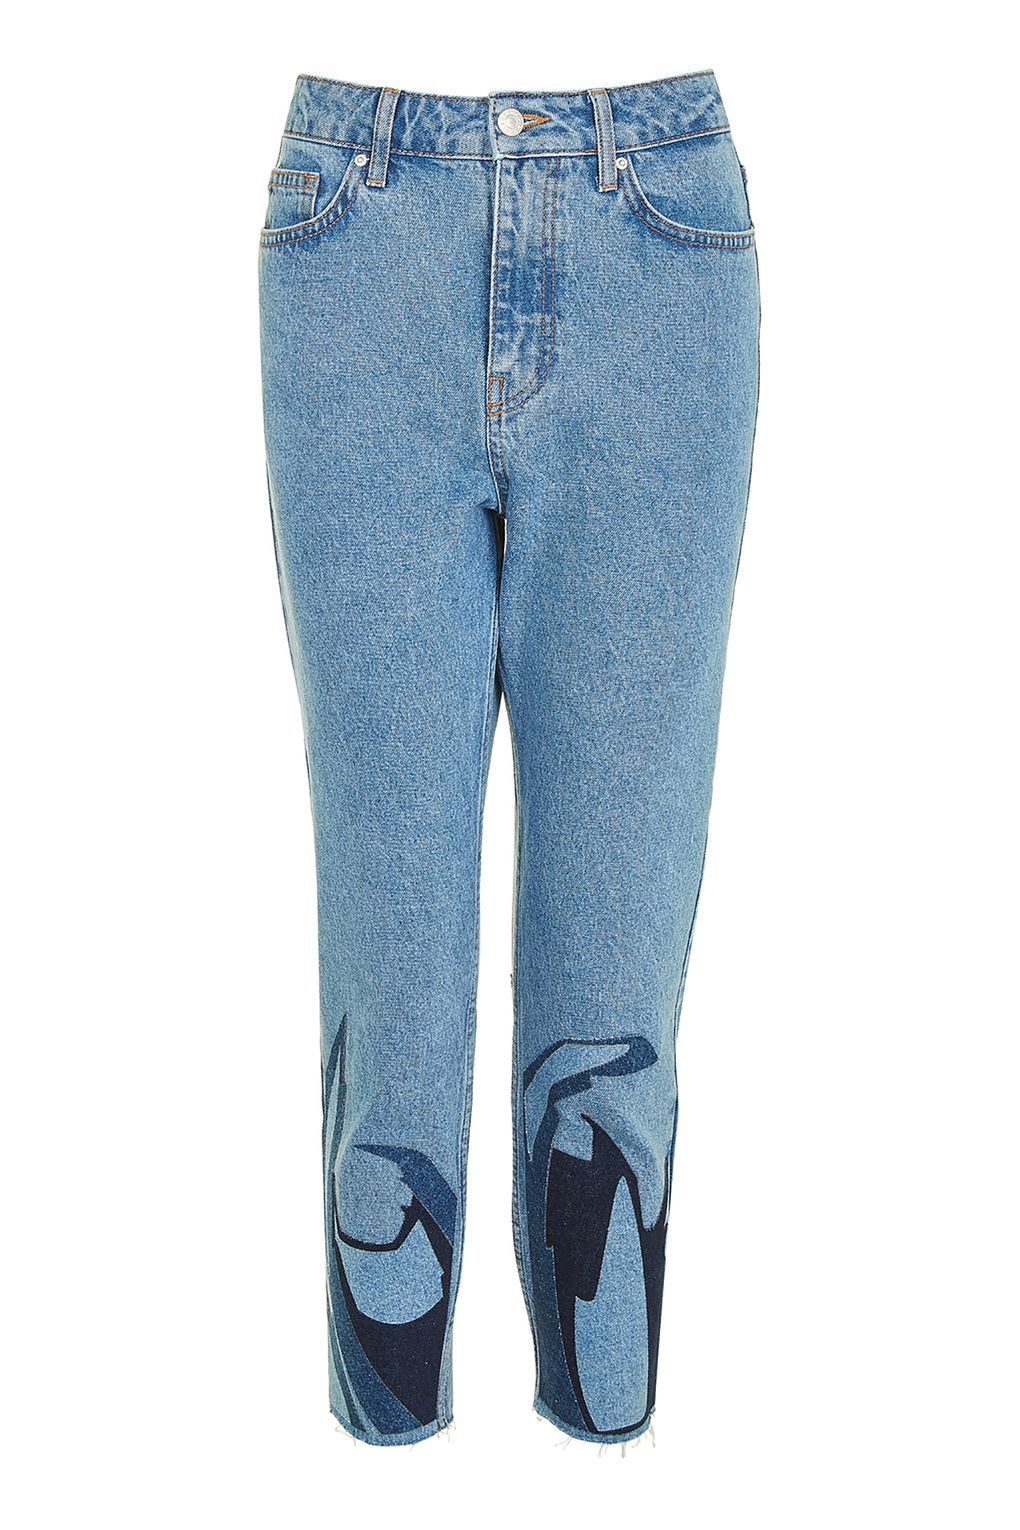 MOTO Abstract Hem Mom Jeans £55